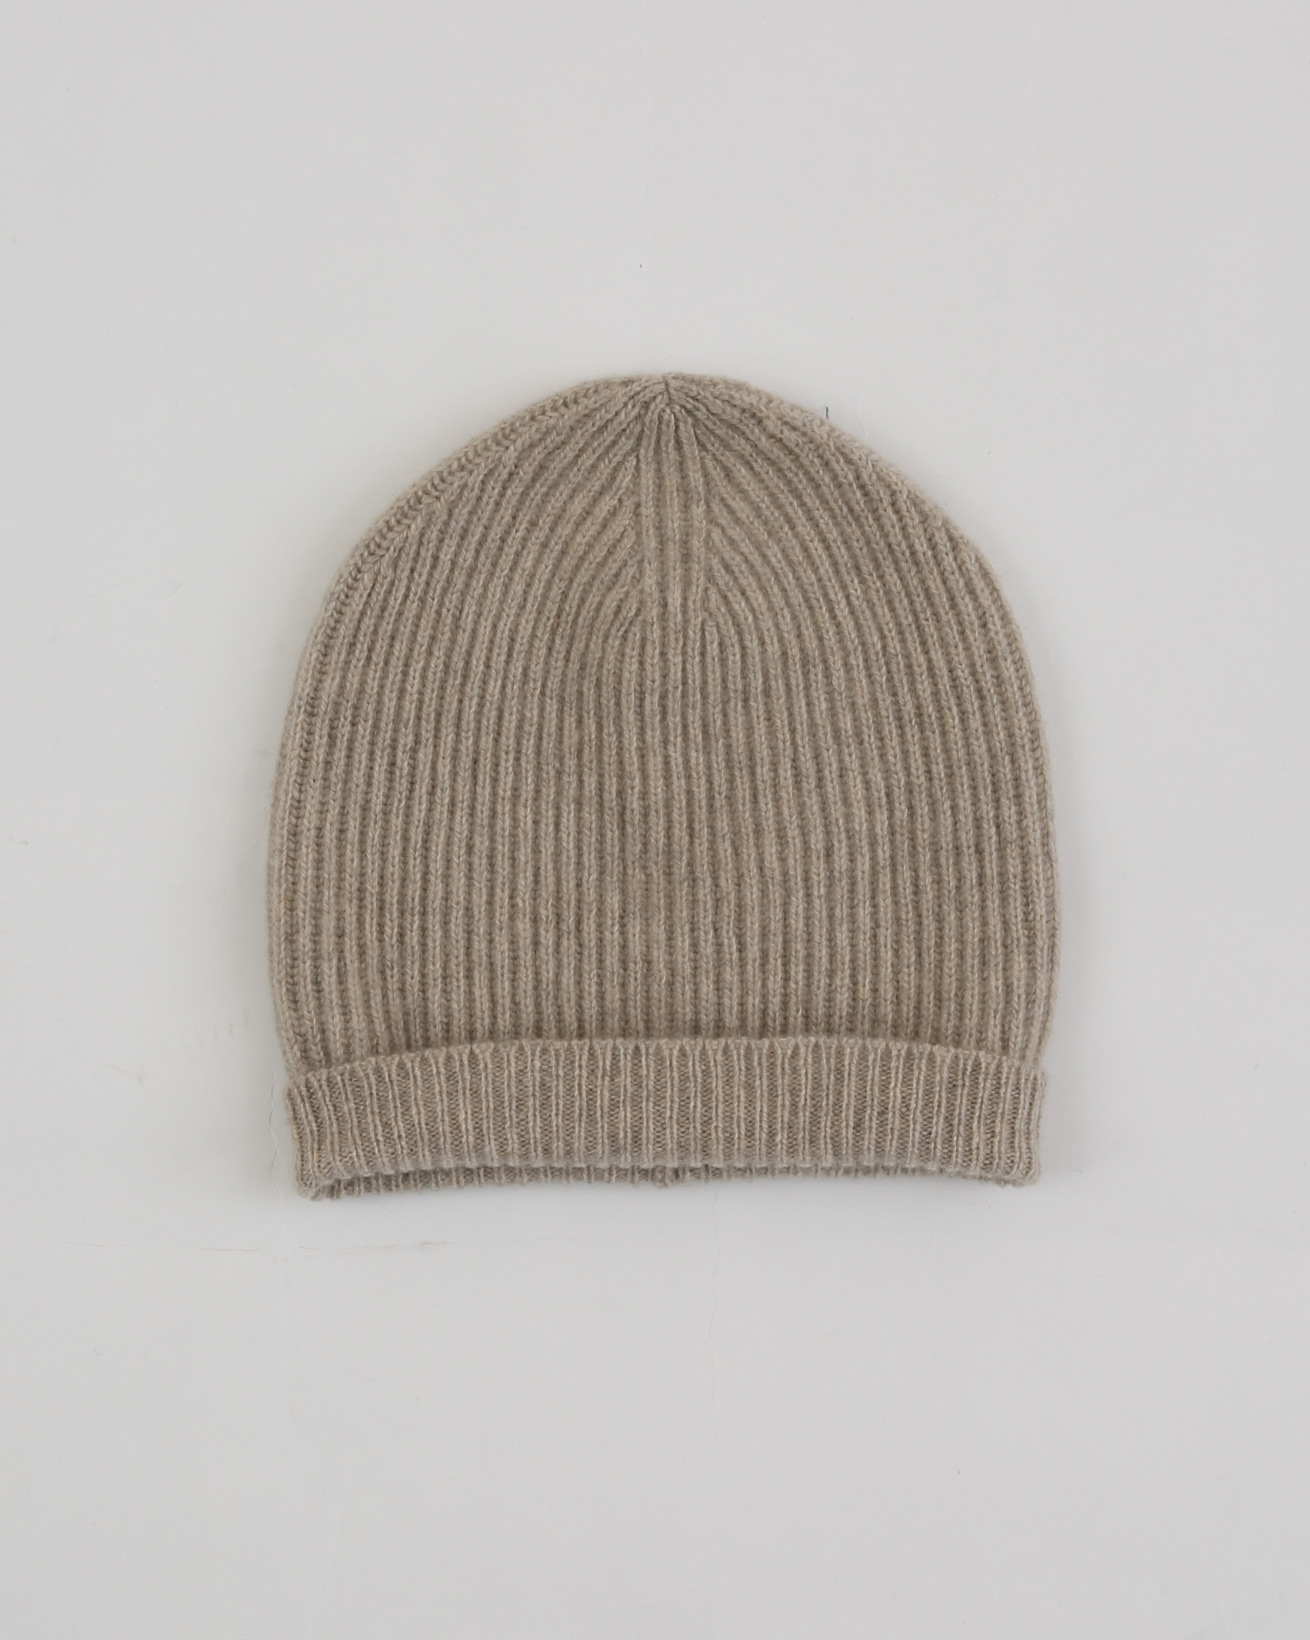 Recycled Cashmere Ribbed Beanie - One Size - Oatmeal - 1895